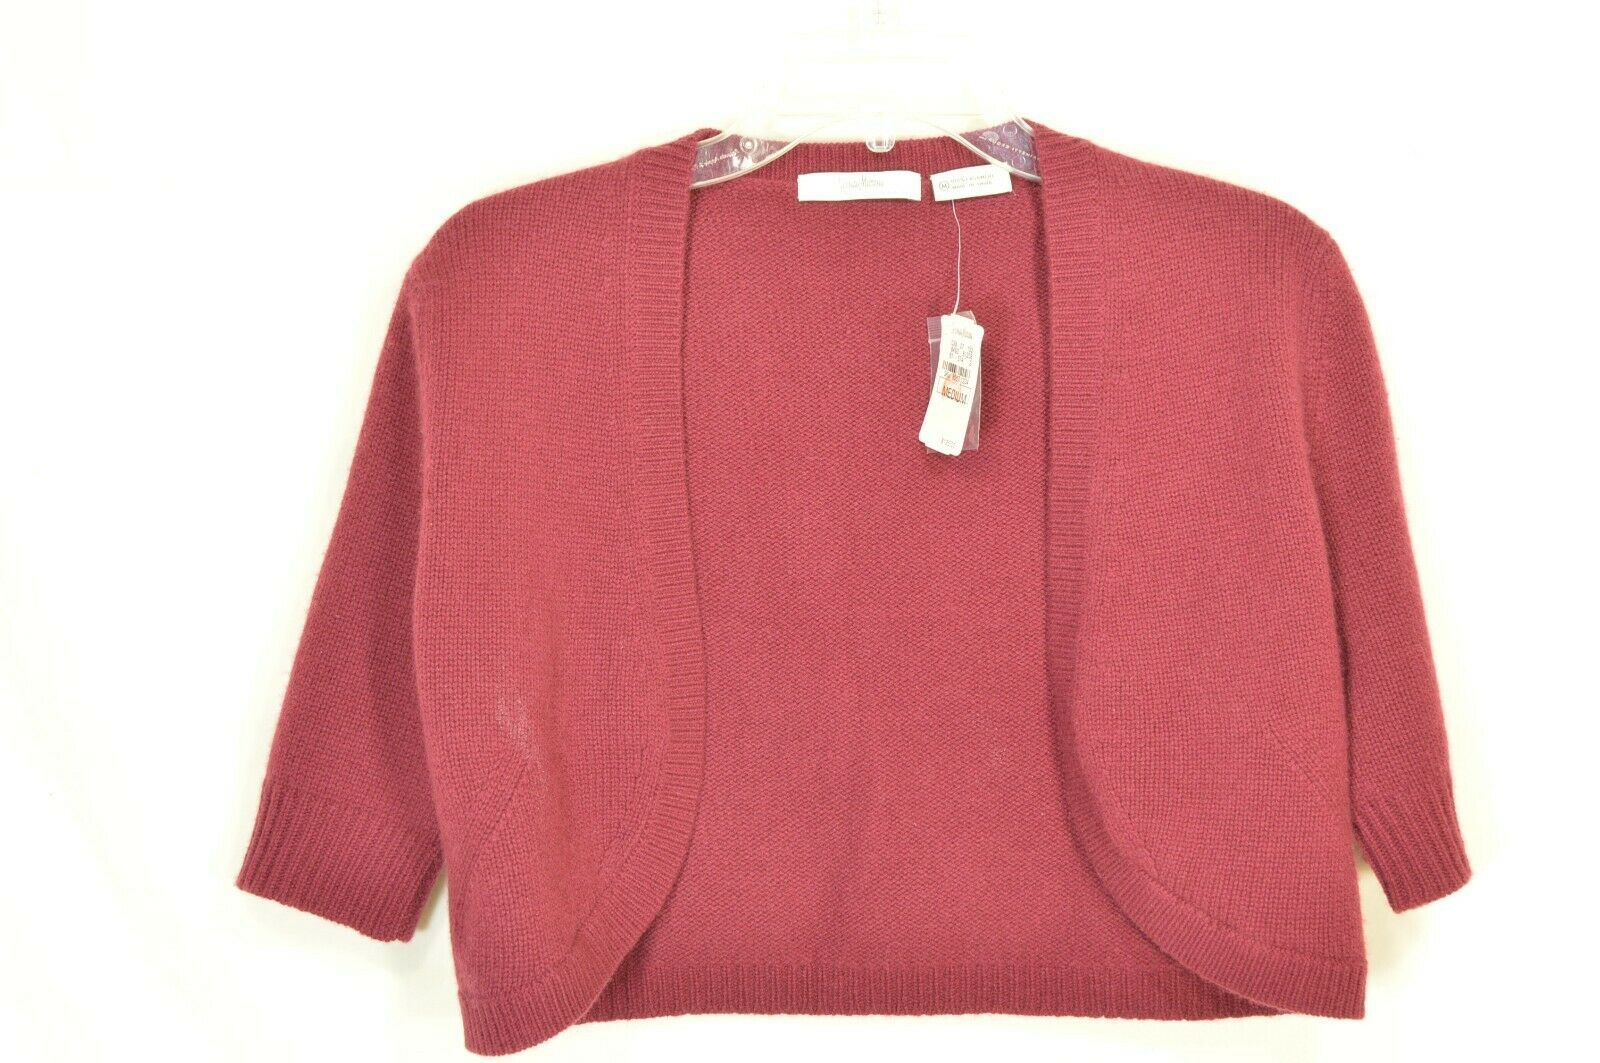 Neiman Marcus sweater M NWT red 100% cashmere shrug bolero cropped $195 new